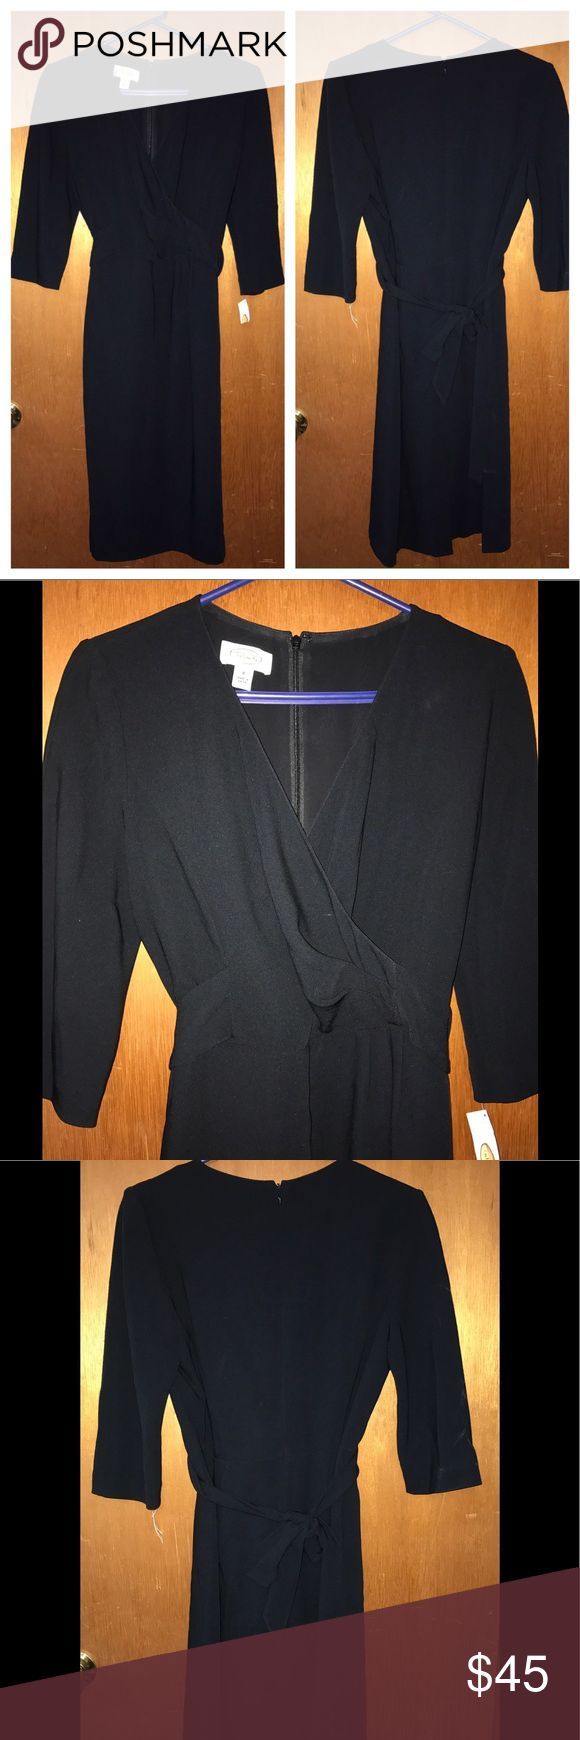 """Talbots black dress size 8 New New with tags, size 8 career dress 3/4 sleeves. Invisible back zipper Tie in back at waist 71% triacetate, 29% polyester Fully lined polyester 38"""" bust, 32"""" waist 40"""" long from back neckline to hem 7"""" split hem in back  (My item C10) Talbots Dresses Midi"""